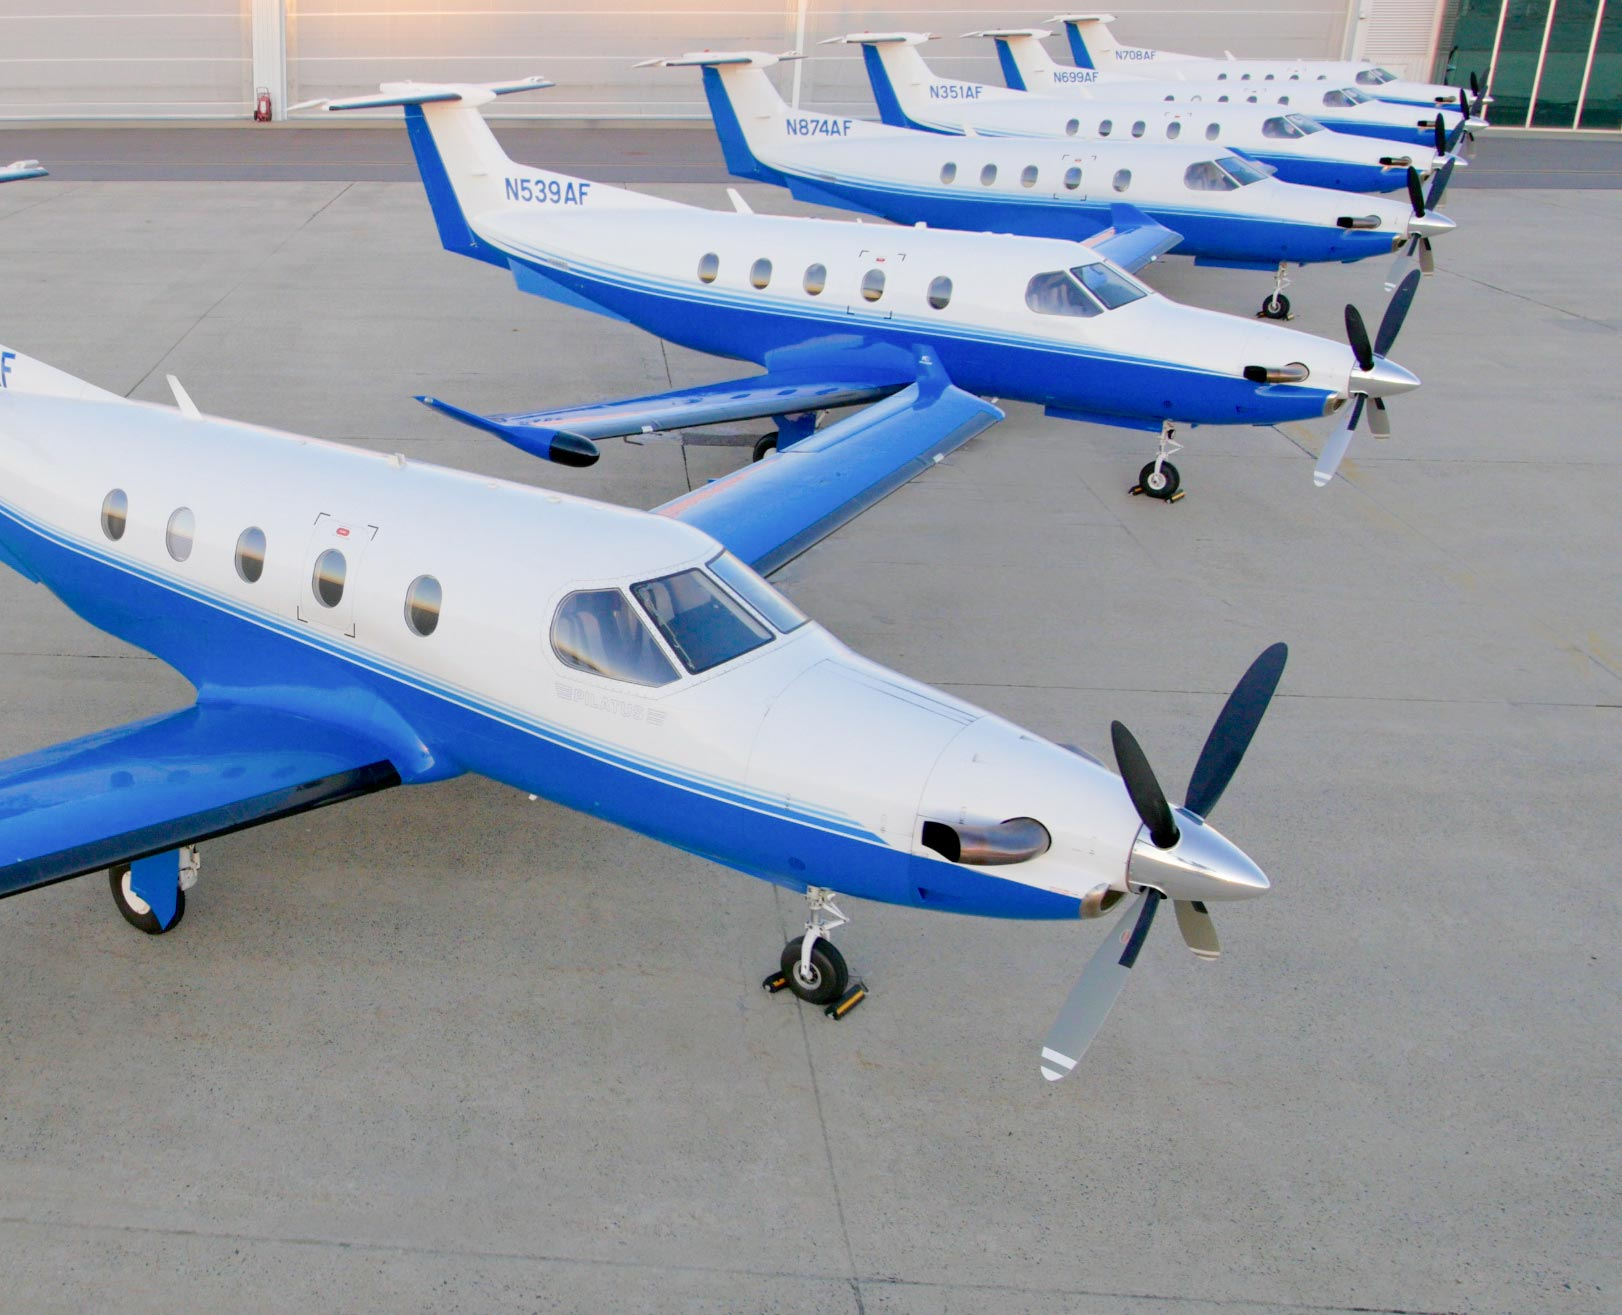 PlaneSense PC-12 NG fractional share for sale by Fractrade owner. The ever-expanding PlaneSense® aircraft fleet all began with the success of the Pilatus PC-12 turboprop aircraft. As the very first aircraft of choice for the fractional program, the PC-12 has been an integral part of the fleet for over 20 years, giving PlaneSense® pilots more experience operating them than any other fractional aircraft manager or charter operator in the world. Want to sell your fractional share on the open market? Call Fractrade to help you find other owners for assignment of your share.